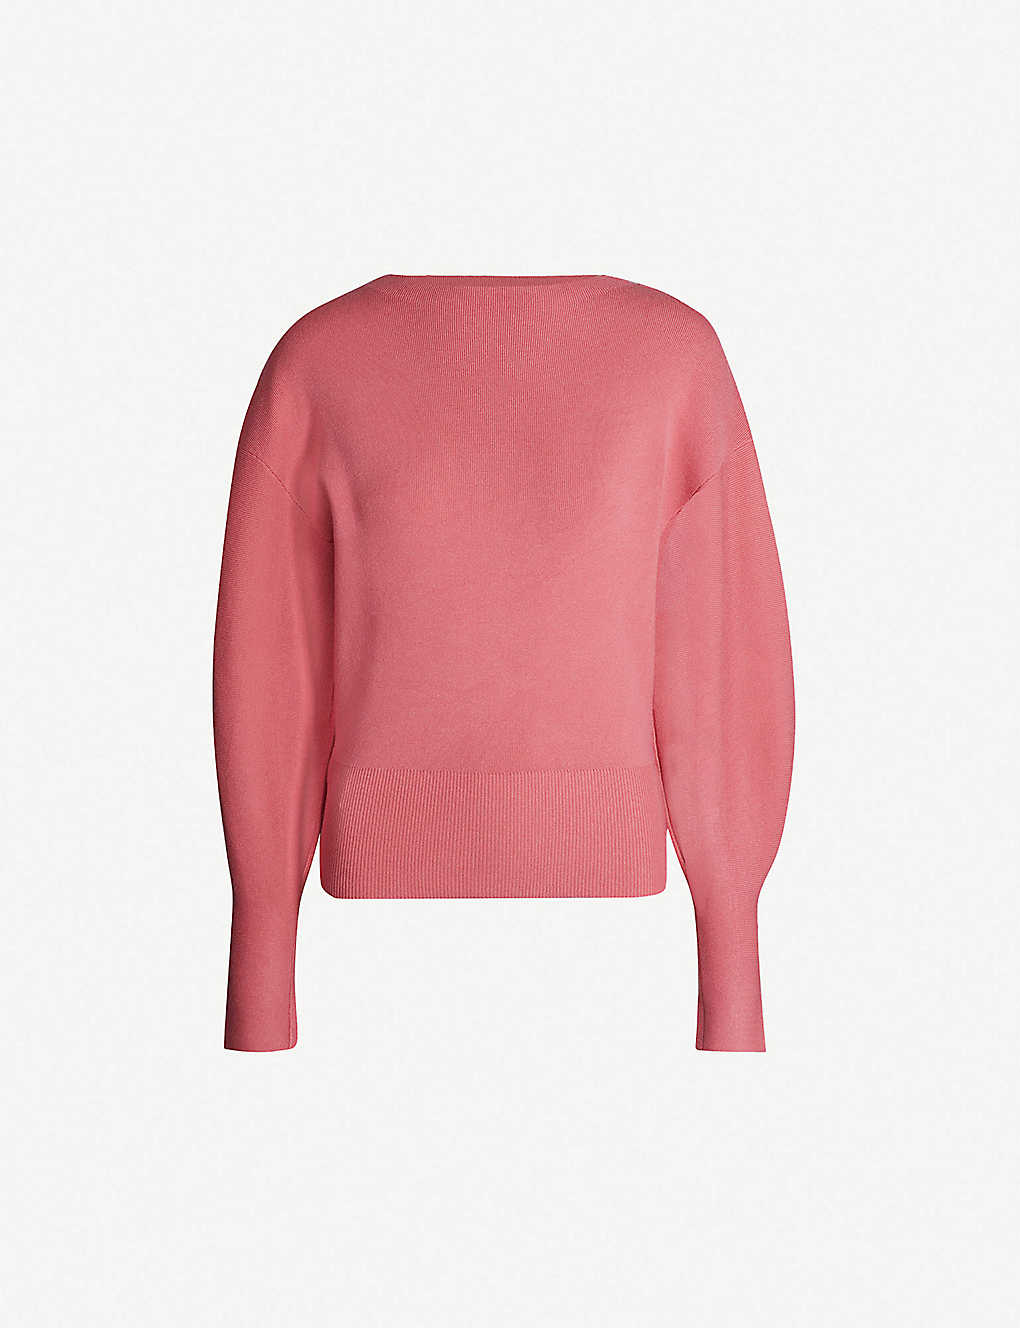 6daada0a76f0 TED BAKER - Popsah bell sleeve knitted jumper